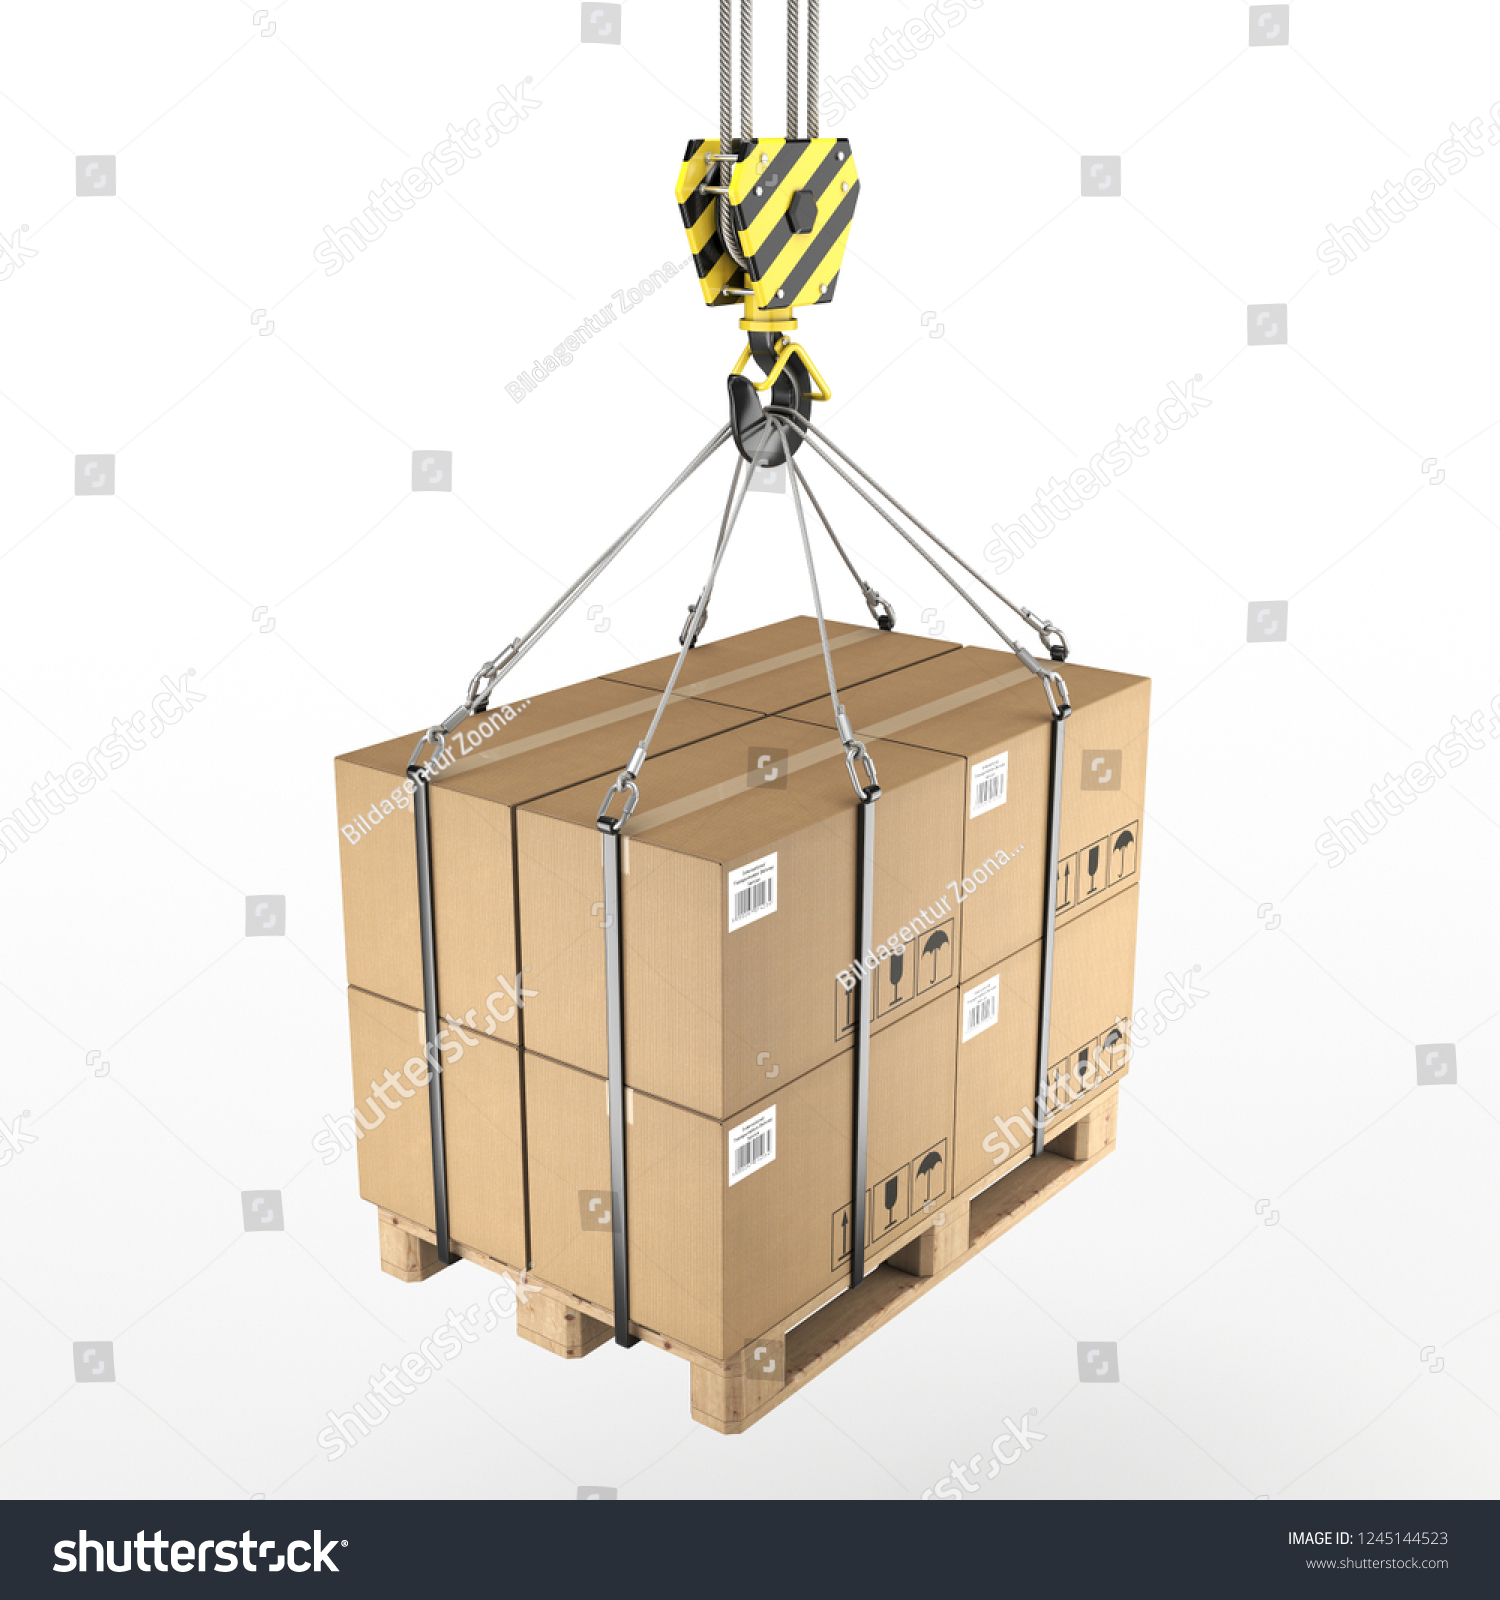 stock photo d rendering of a crane hook with a load on a pallet d illustration 1245144523 3 d rendering crane hook load on stock illustration 1245144523